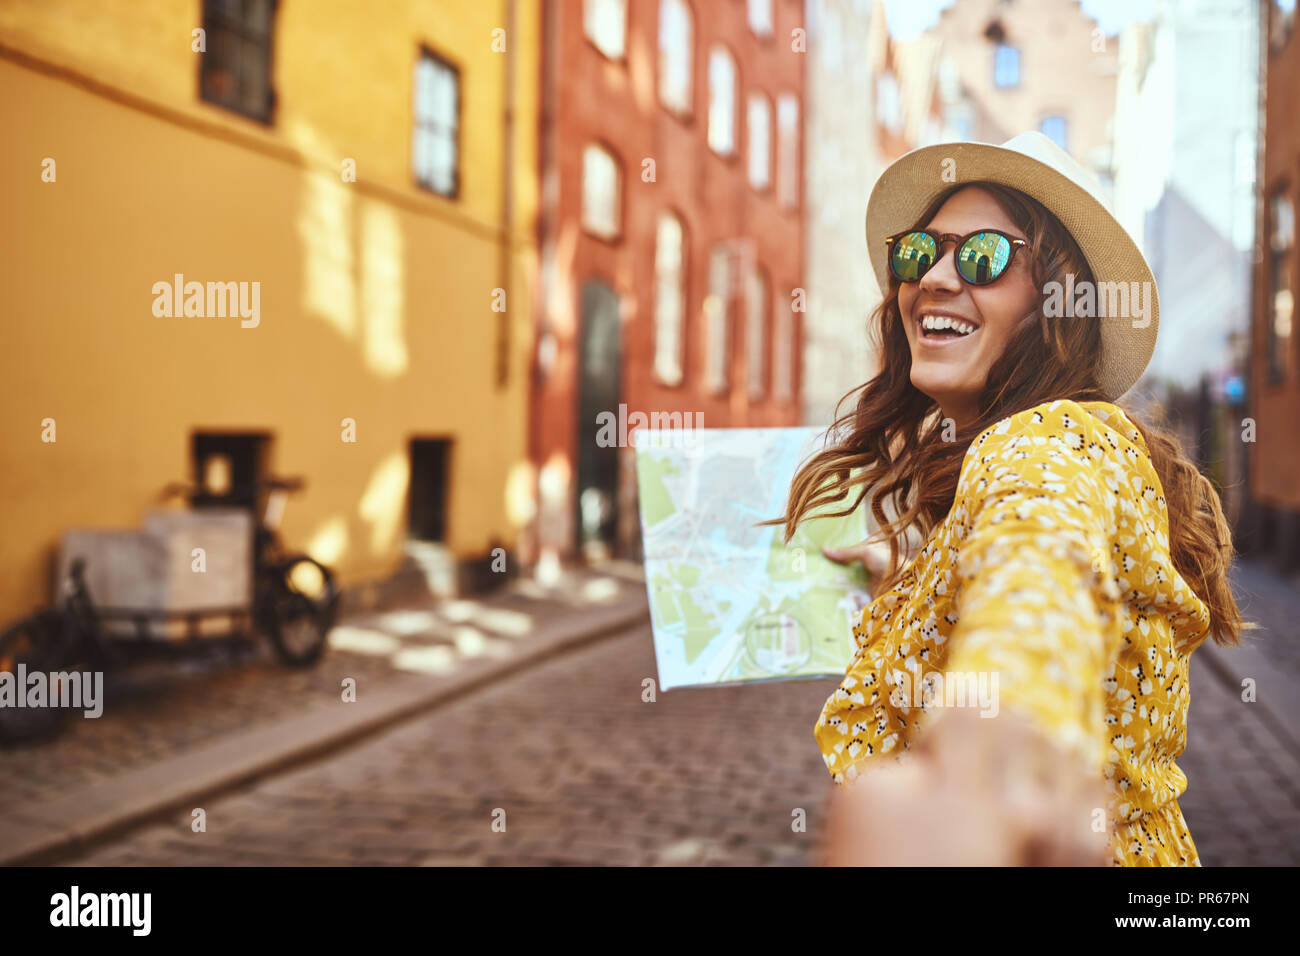 POV of a smiling young woman wearing sunglasses and holding a map leading another person by the hand while exploring city streets together - Stock Image